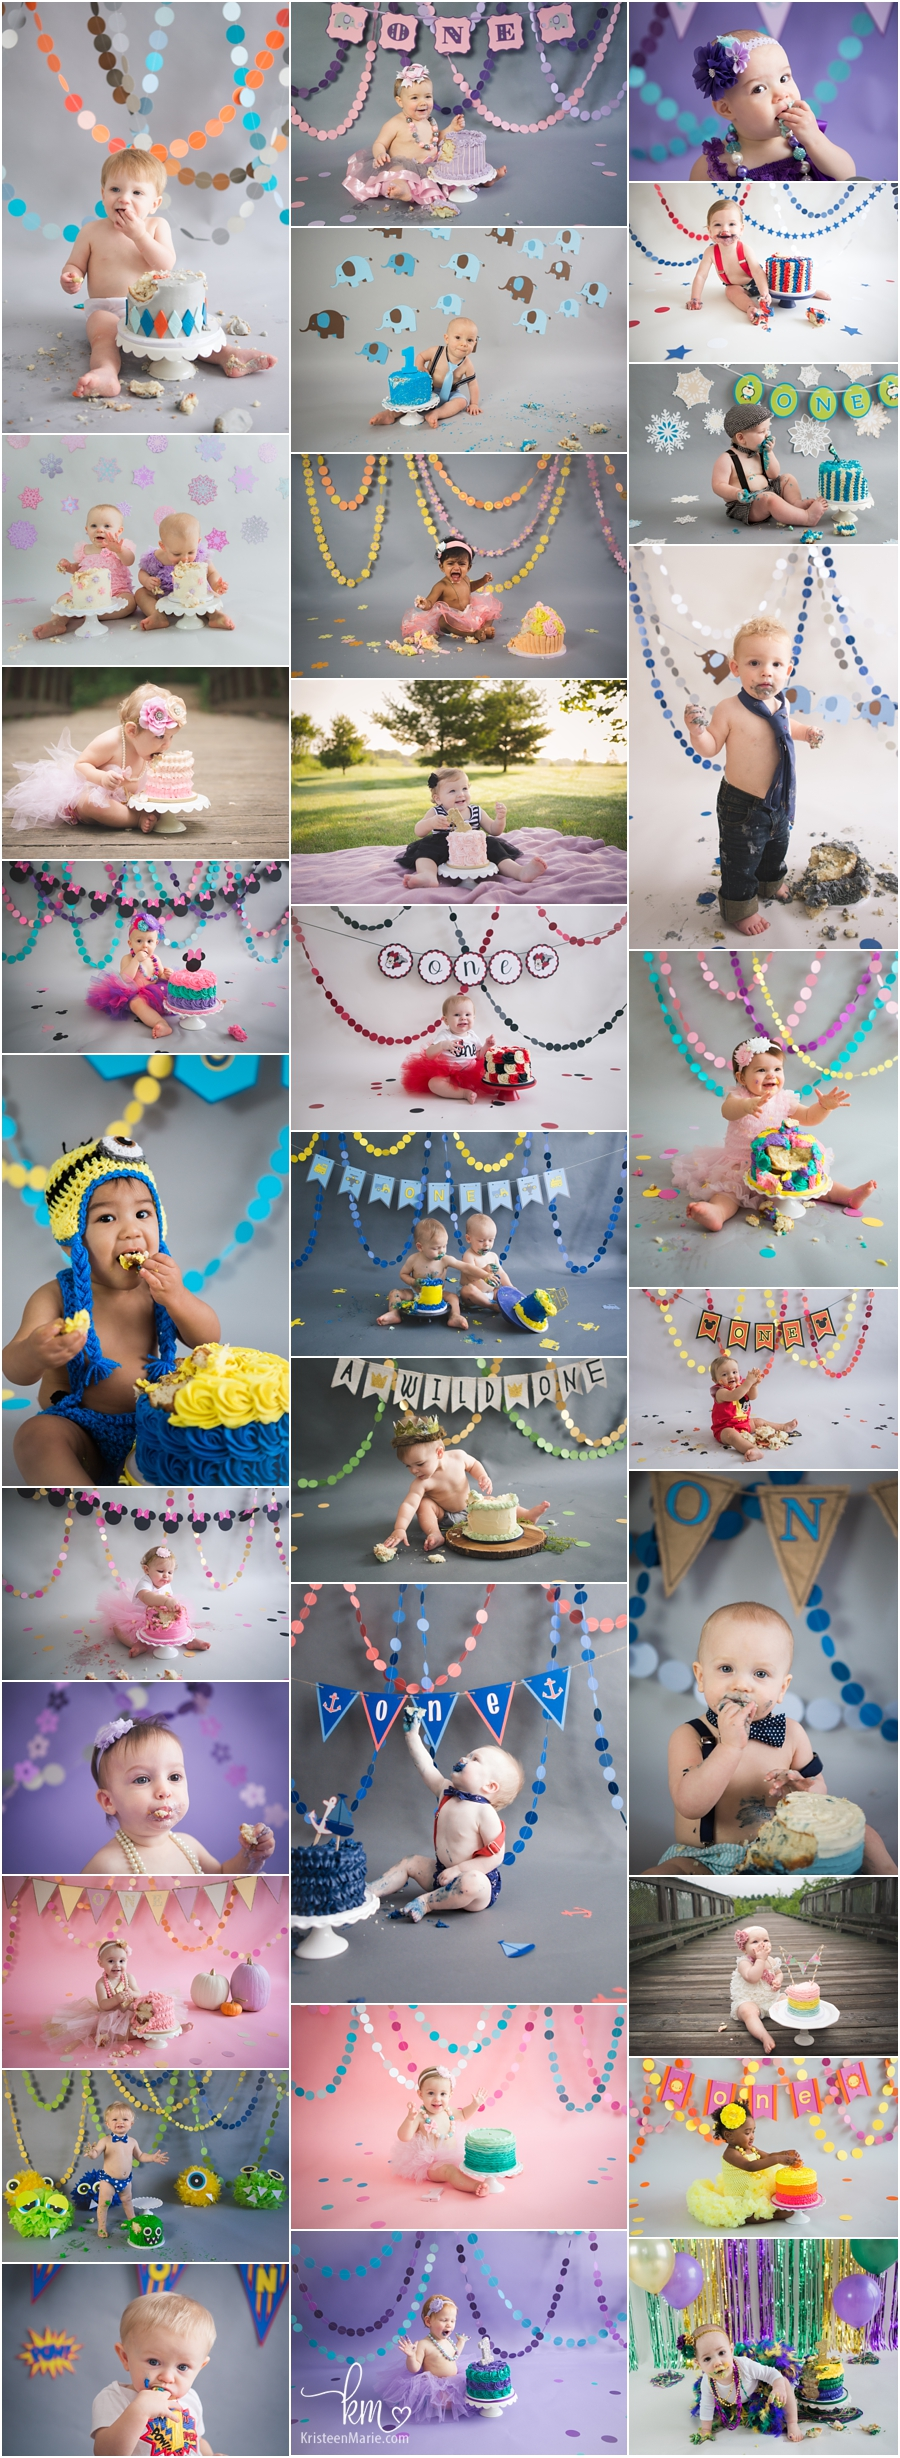 Indianapolis Cake Smash Photogrpaher - Cake smash photography ideas from KristeenMarie Photo